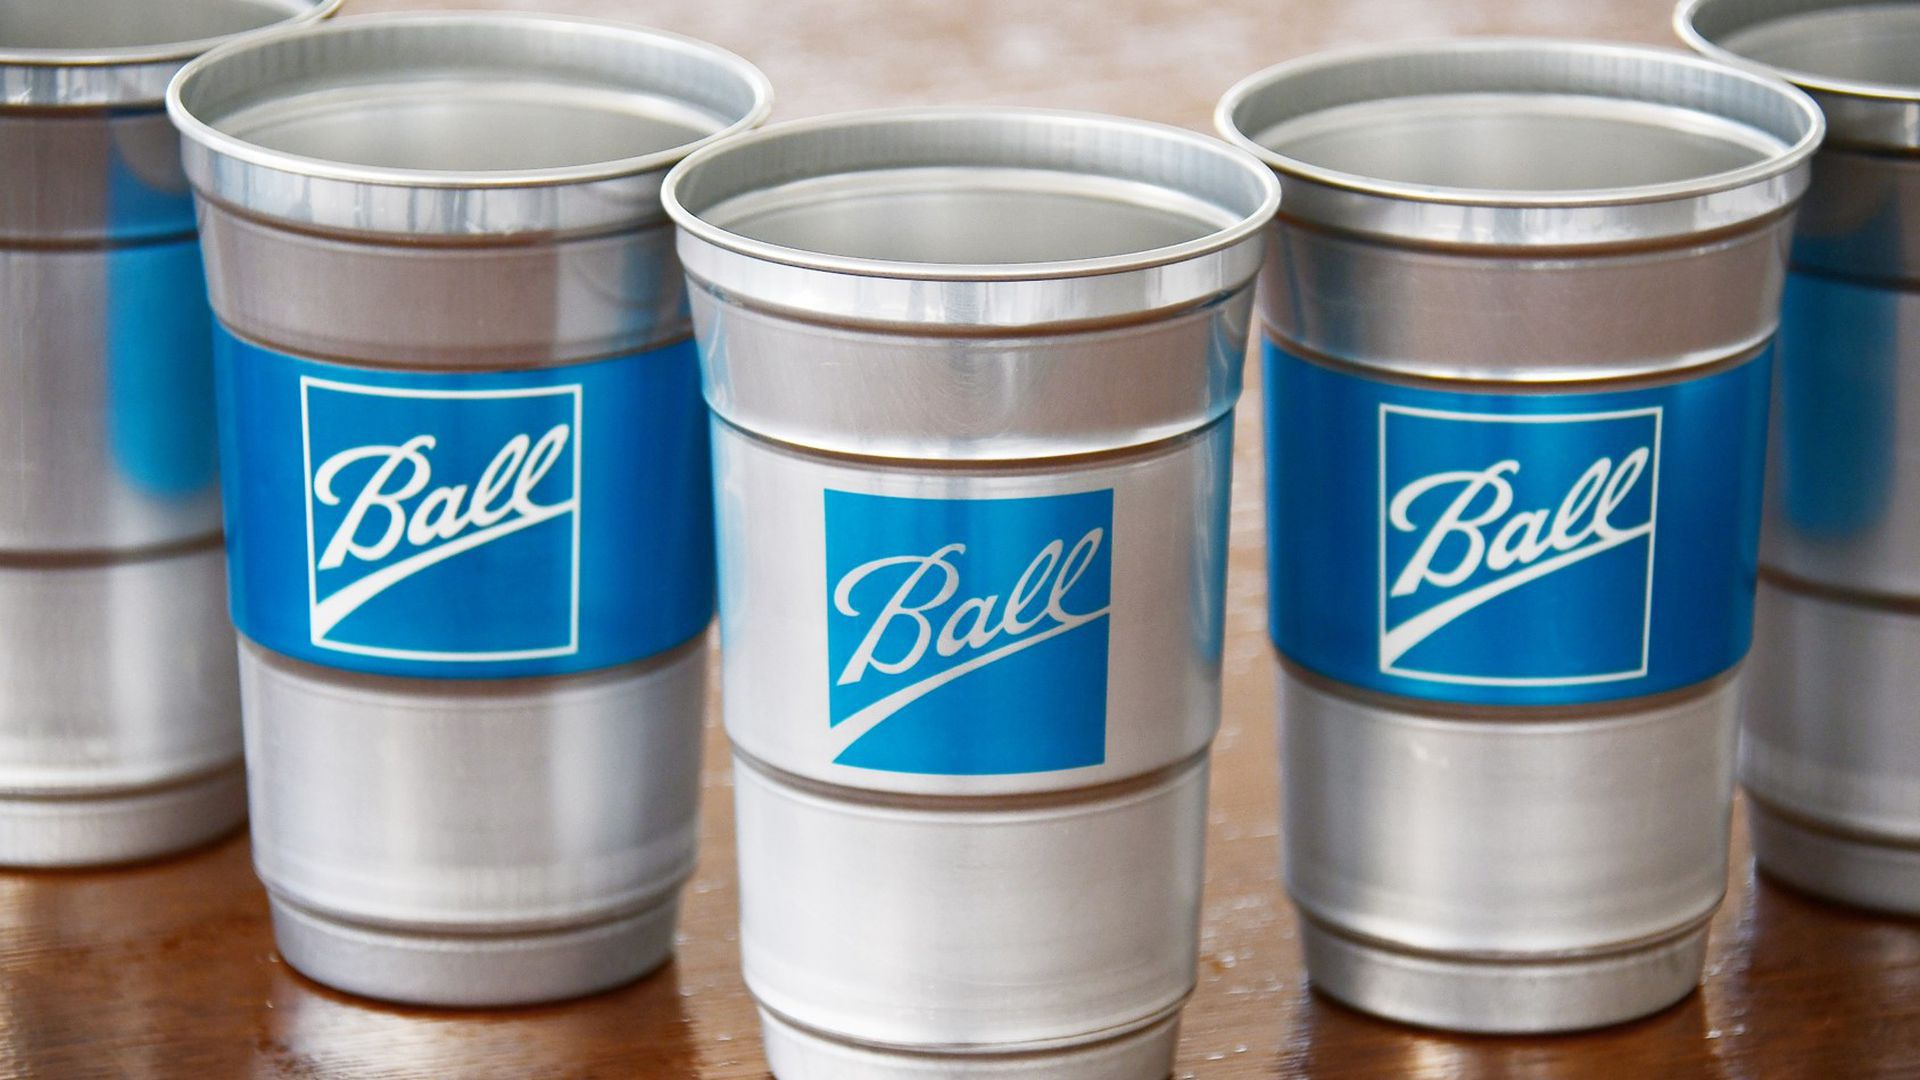 Recyclable aluminum cups by Ball Corporation